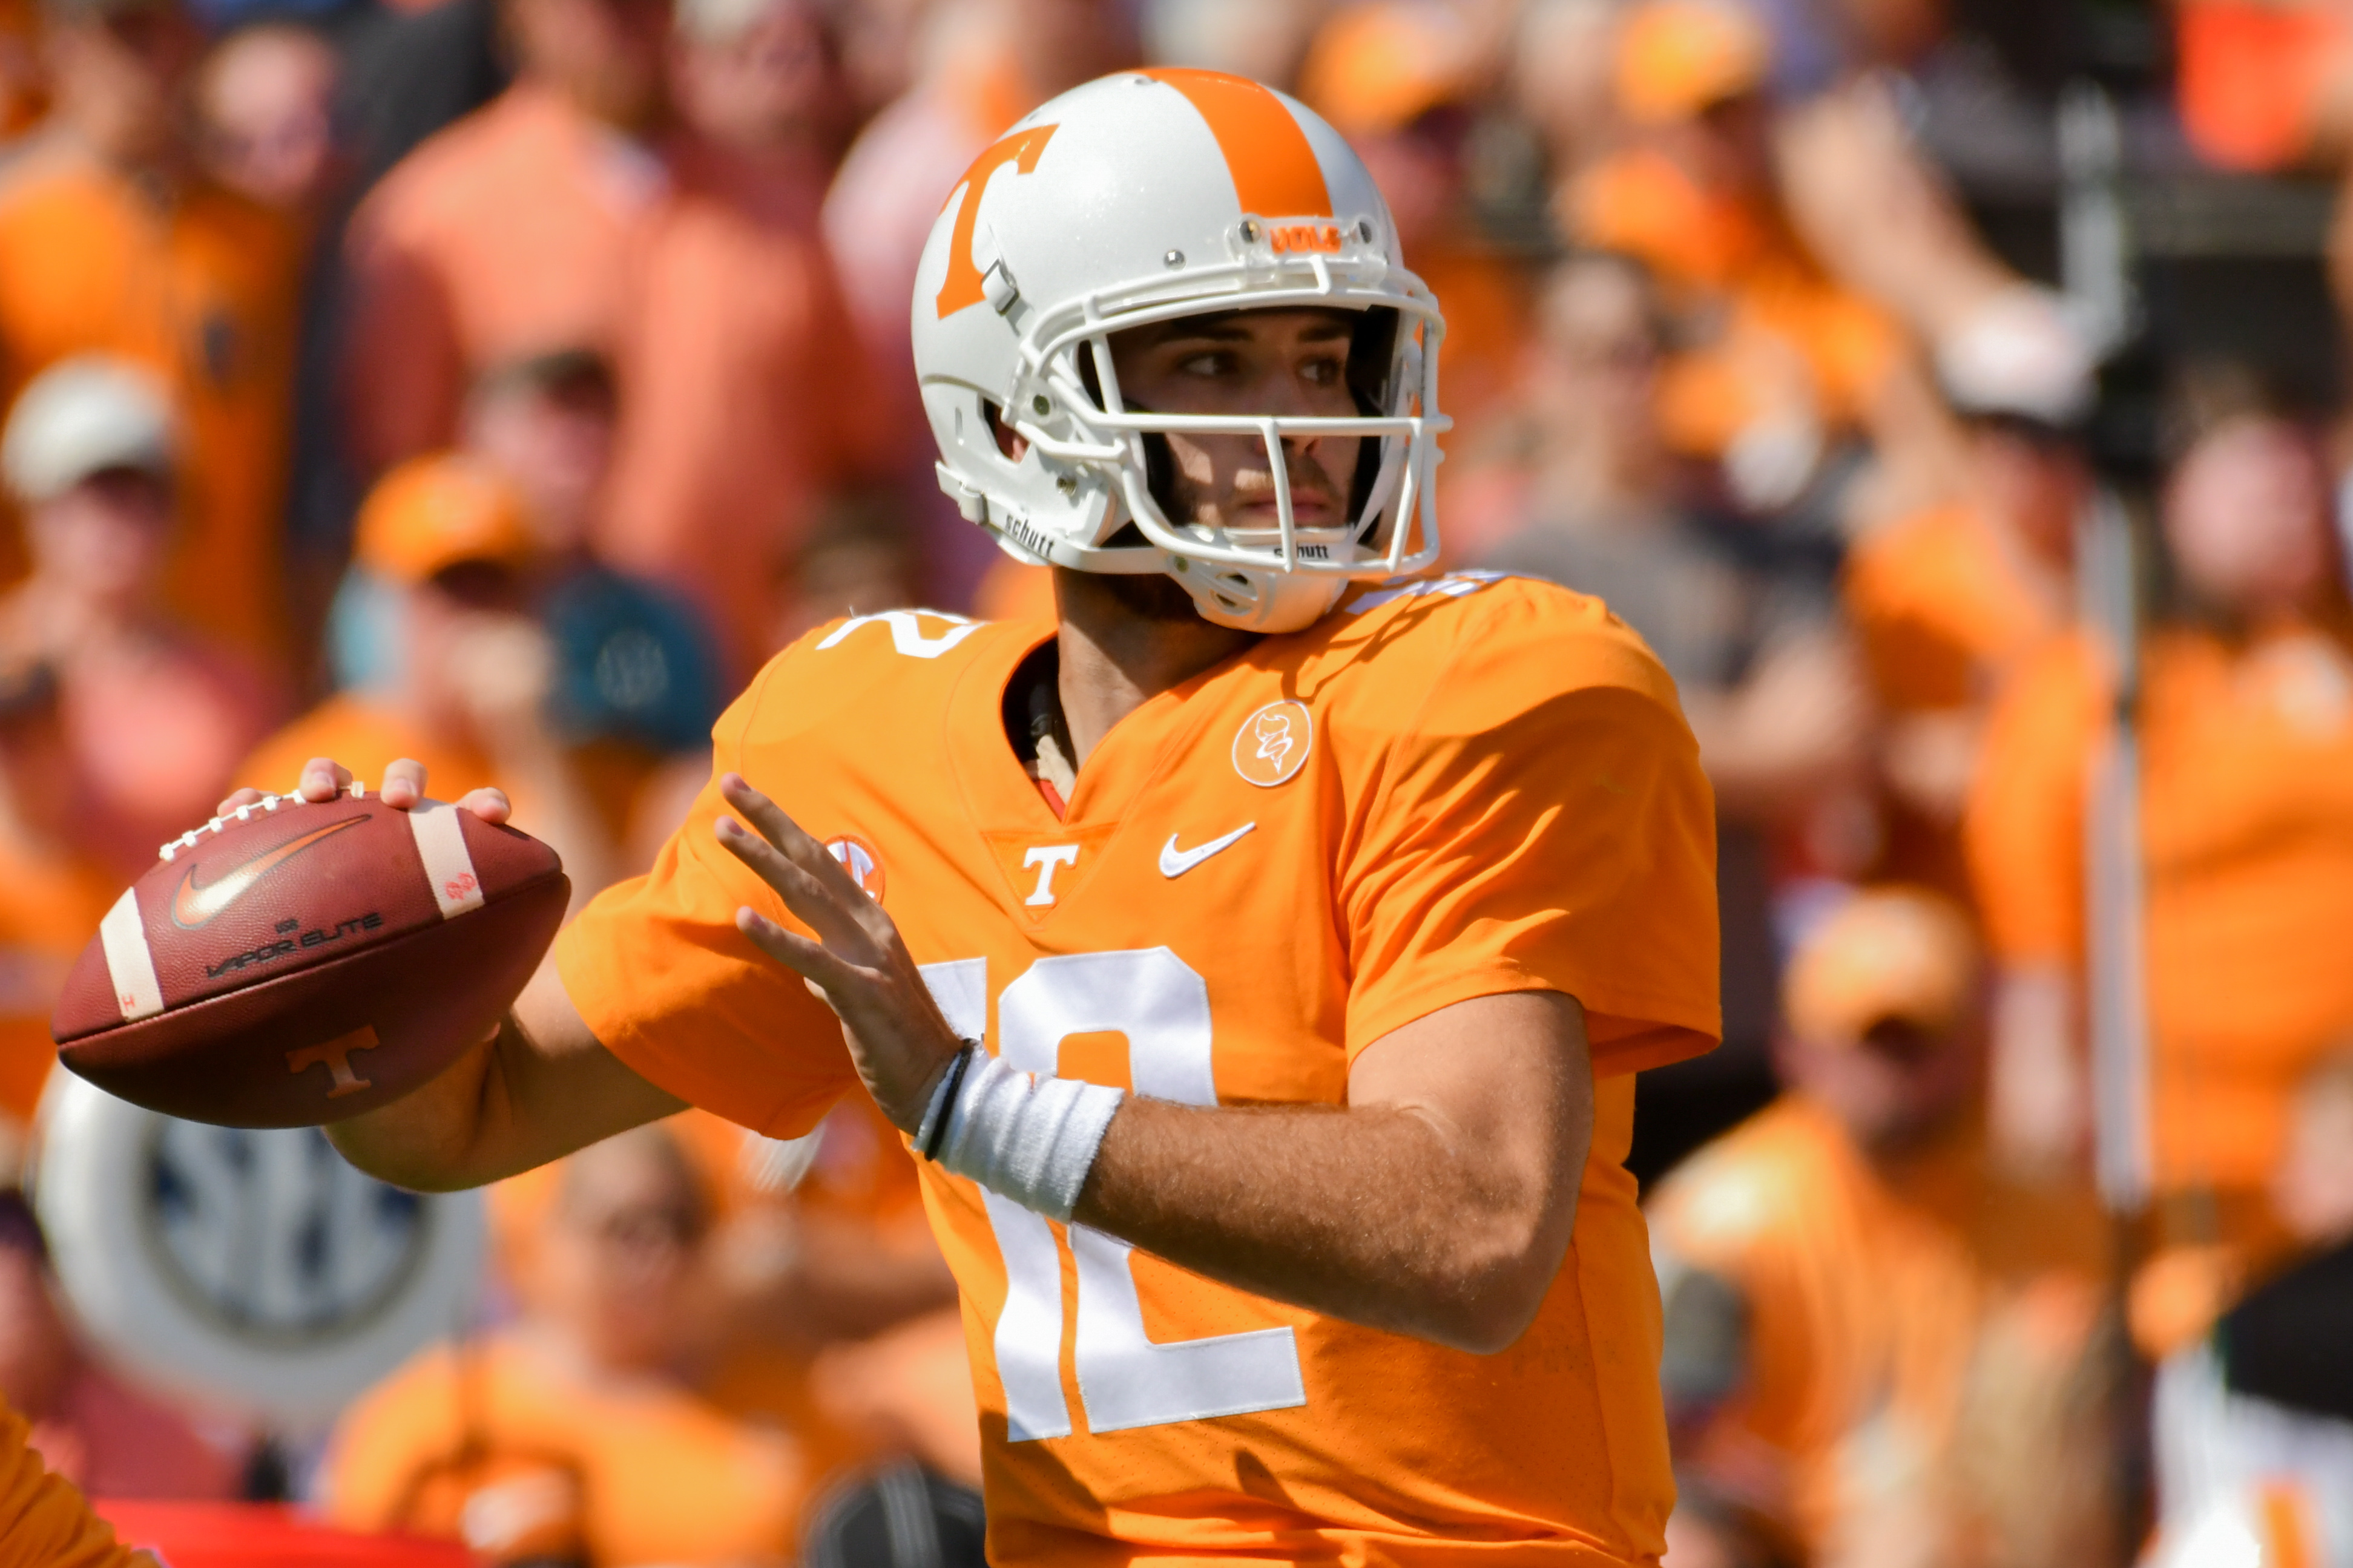 Tennessee QB Quinten Dormady plans to transfer